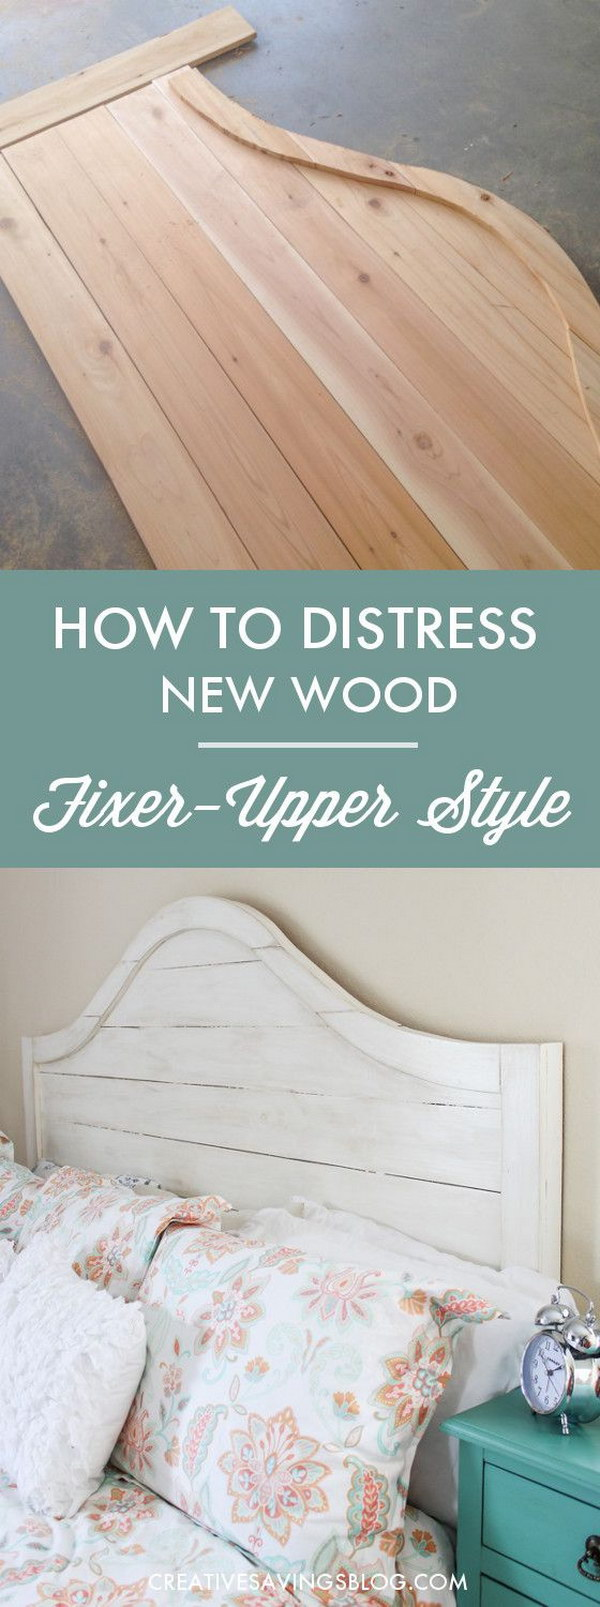 Diy shabby chic furniture - Distress New Wood To Shabby Chic Style Headboard